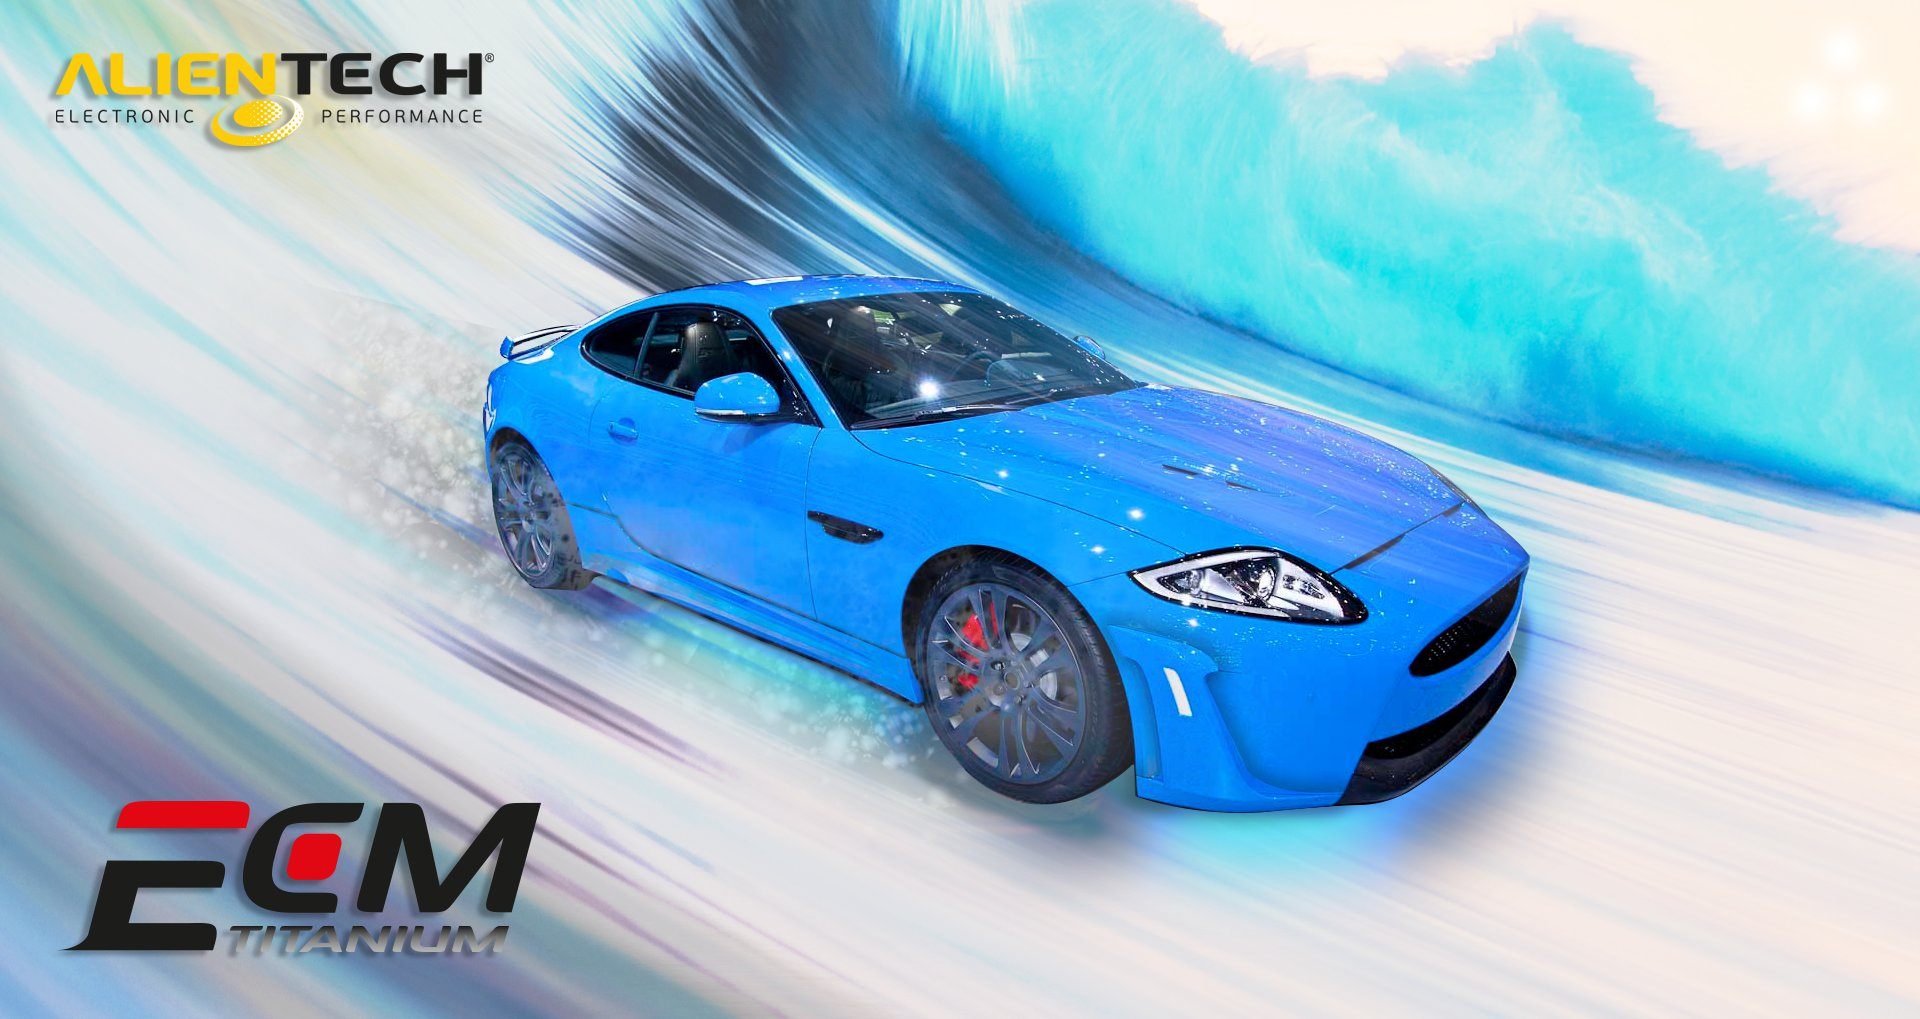 2010 Jaguar XKR 4.2 V8 Supercharged